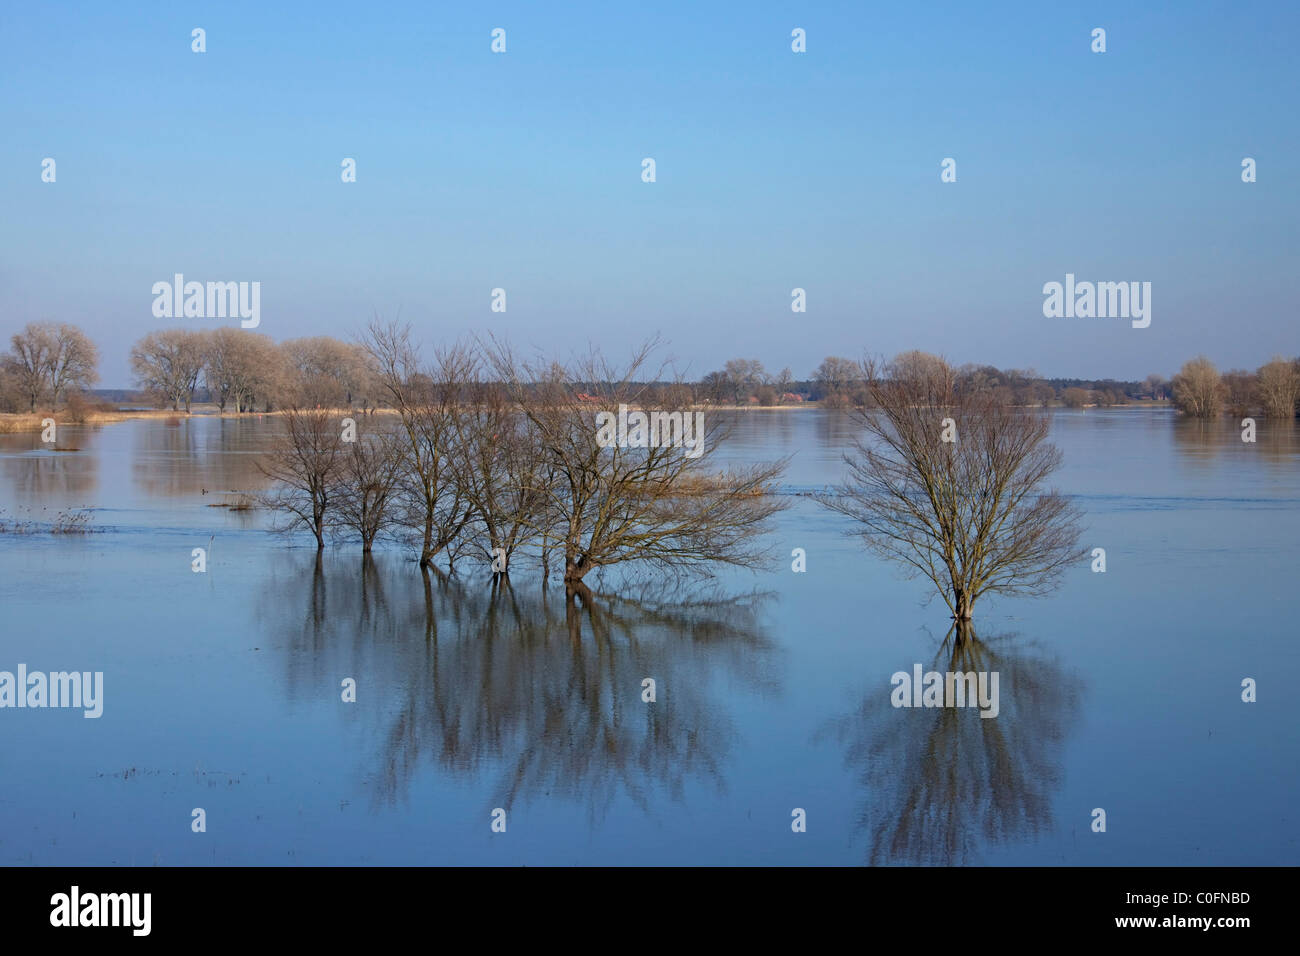 Flooded meadows at the Elbe River Landscape Biosphere Reserve, Niedersachsen, Germany - Stock Image